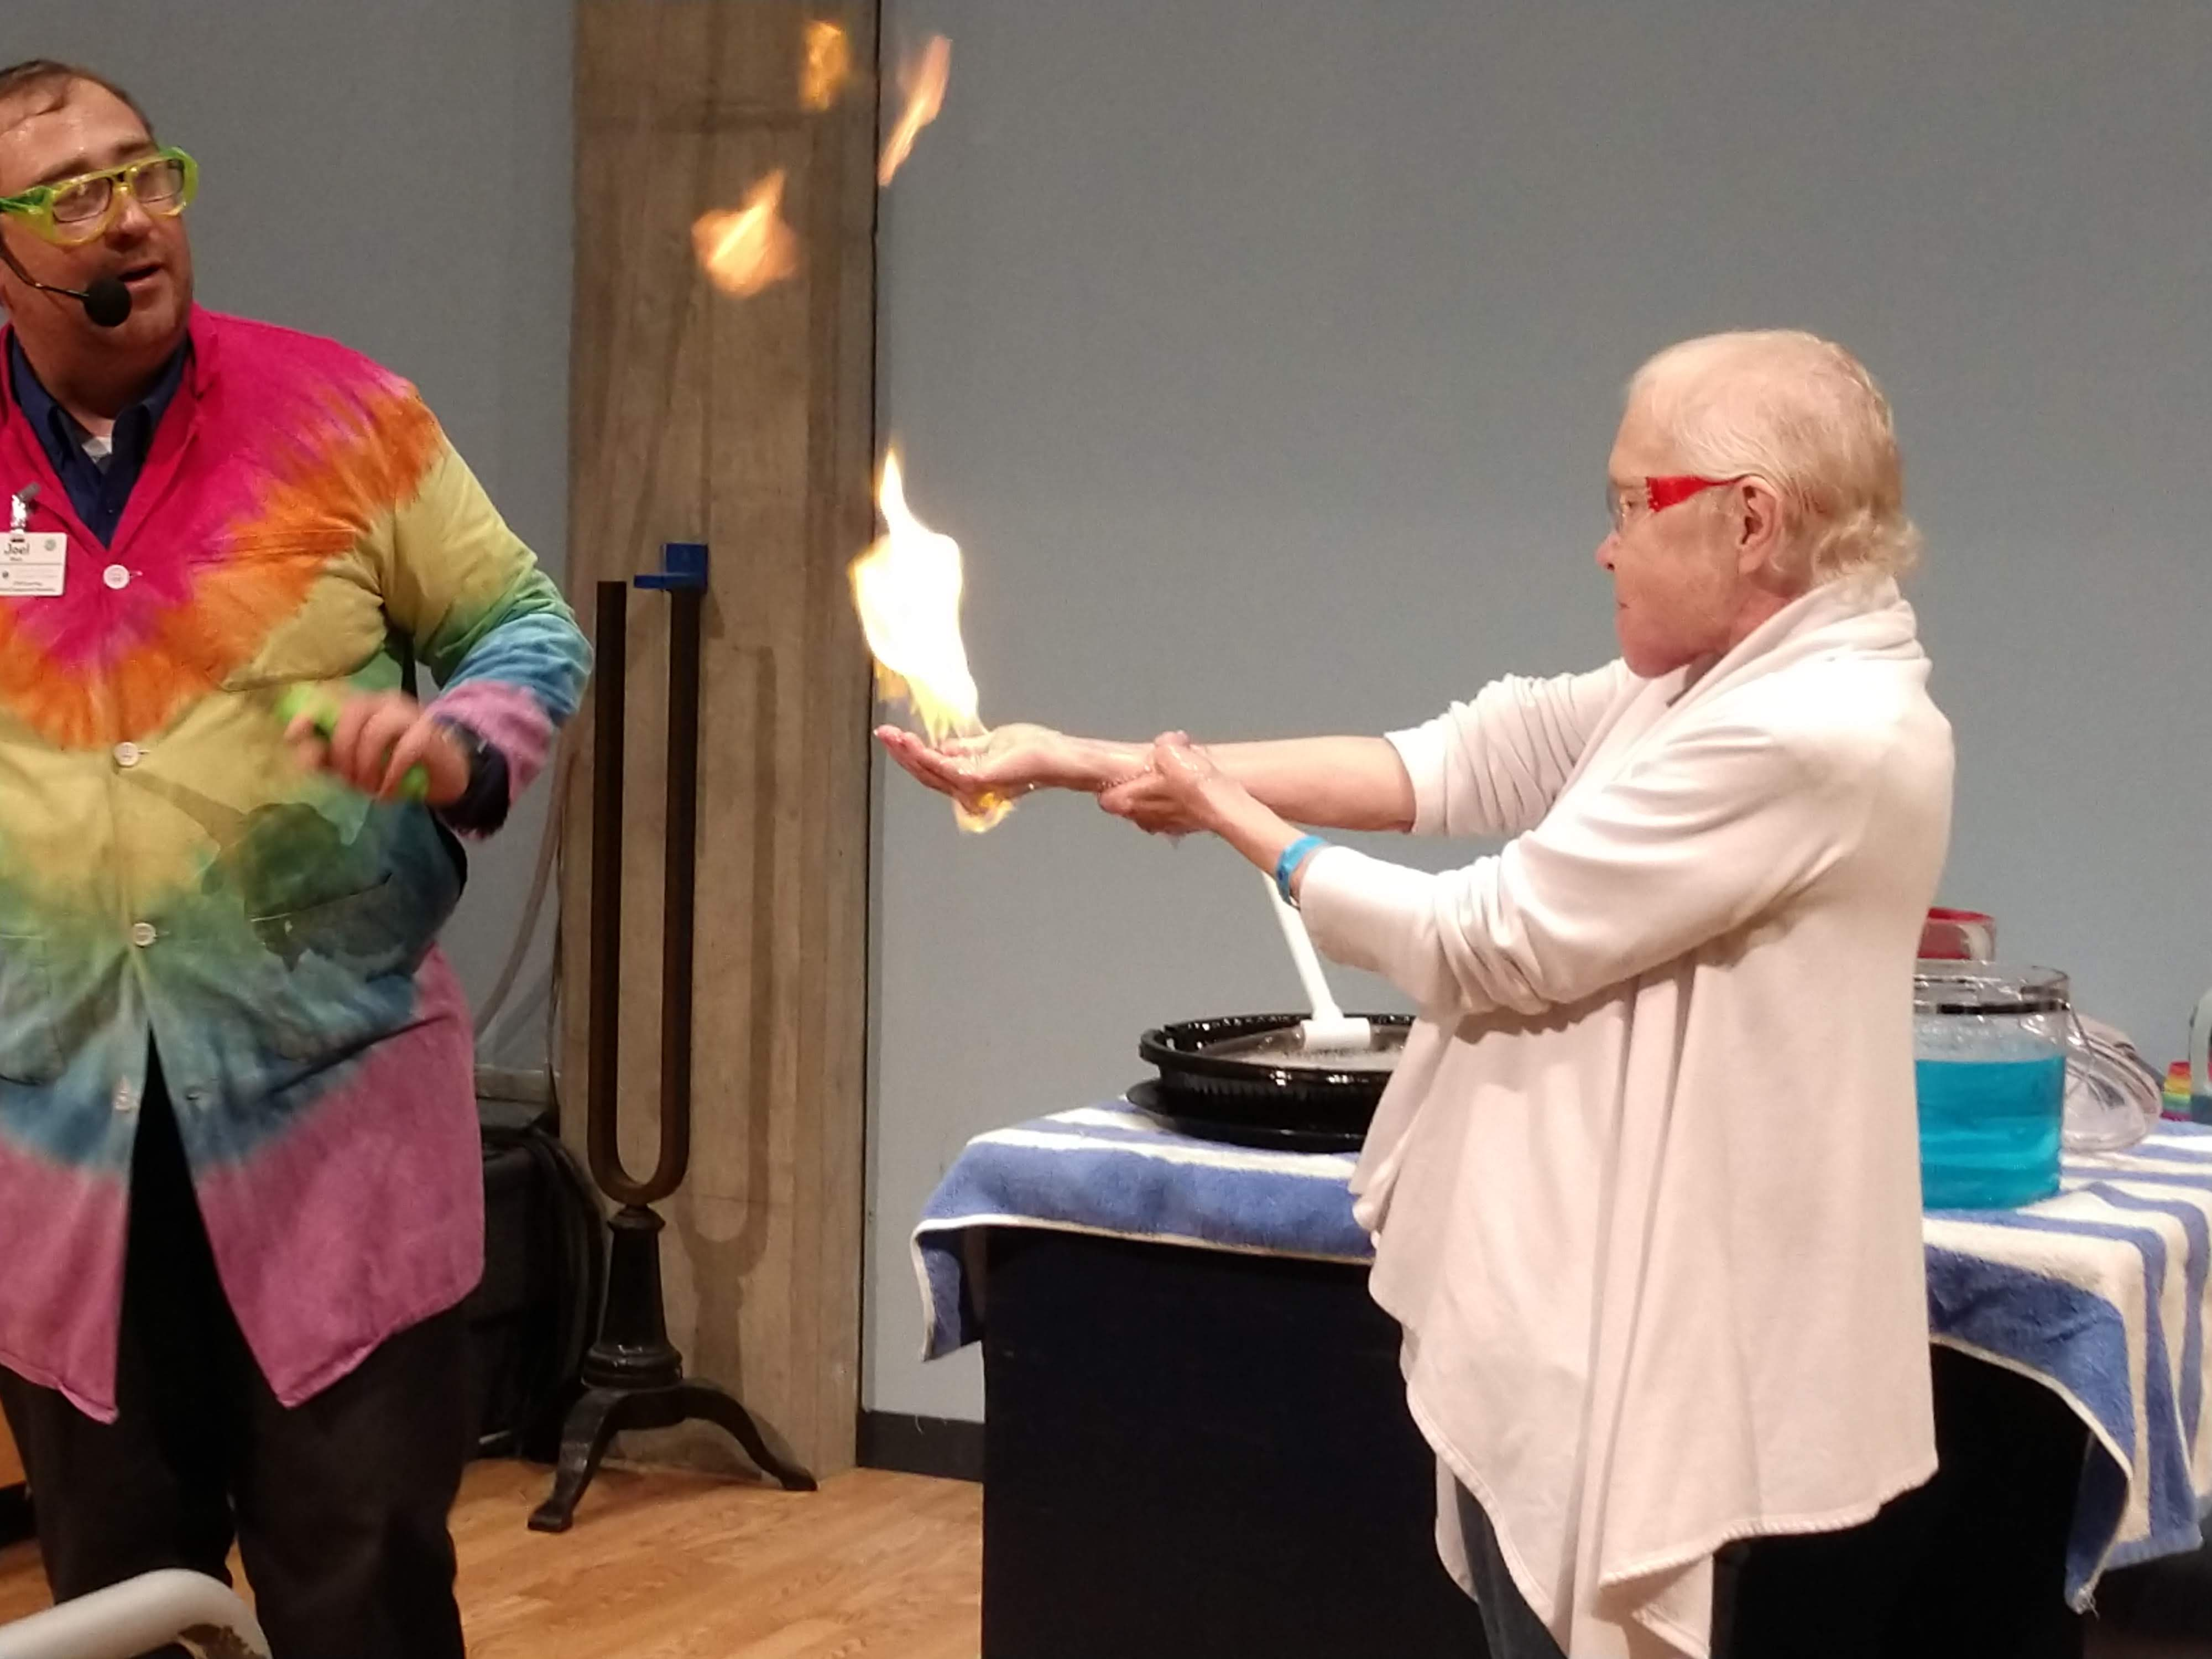 The Great Lakes Science Center is sharing science experiments 10:30 am every weekday on their YouTube channel. (I don't care how bored you are. Don't light your hand on fire!)